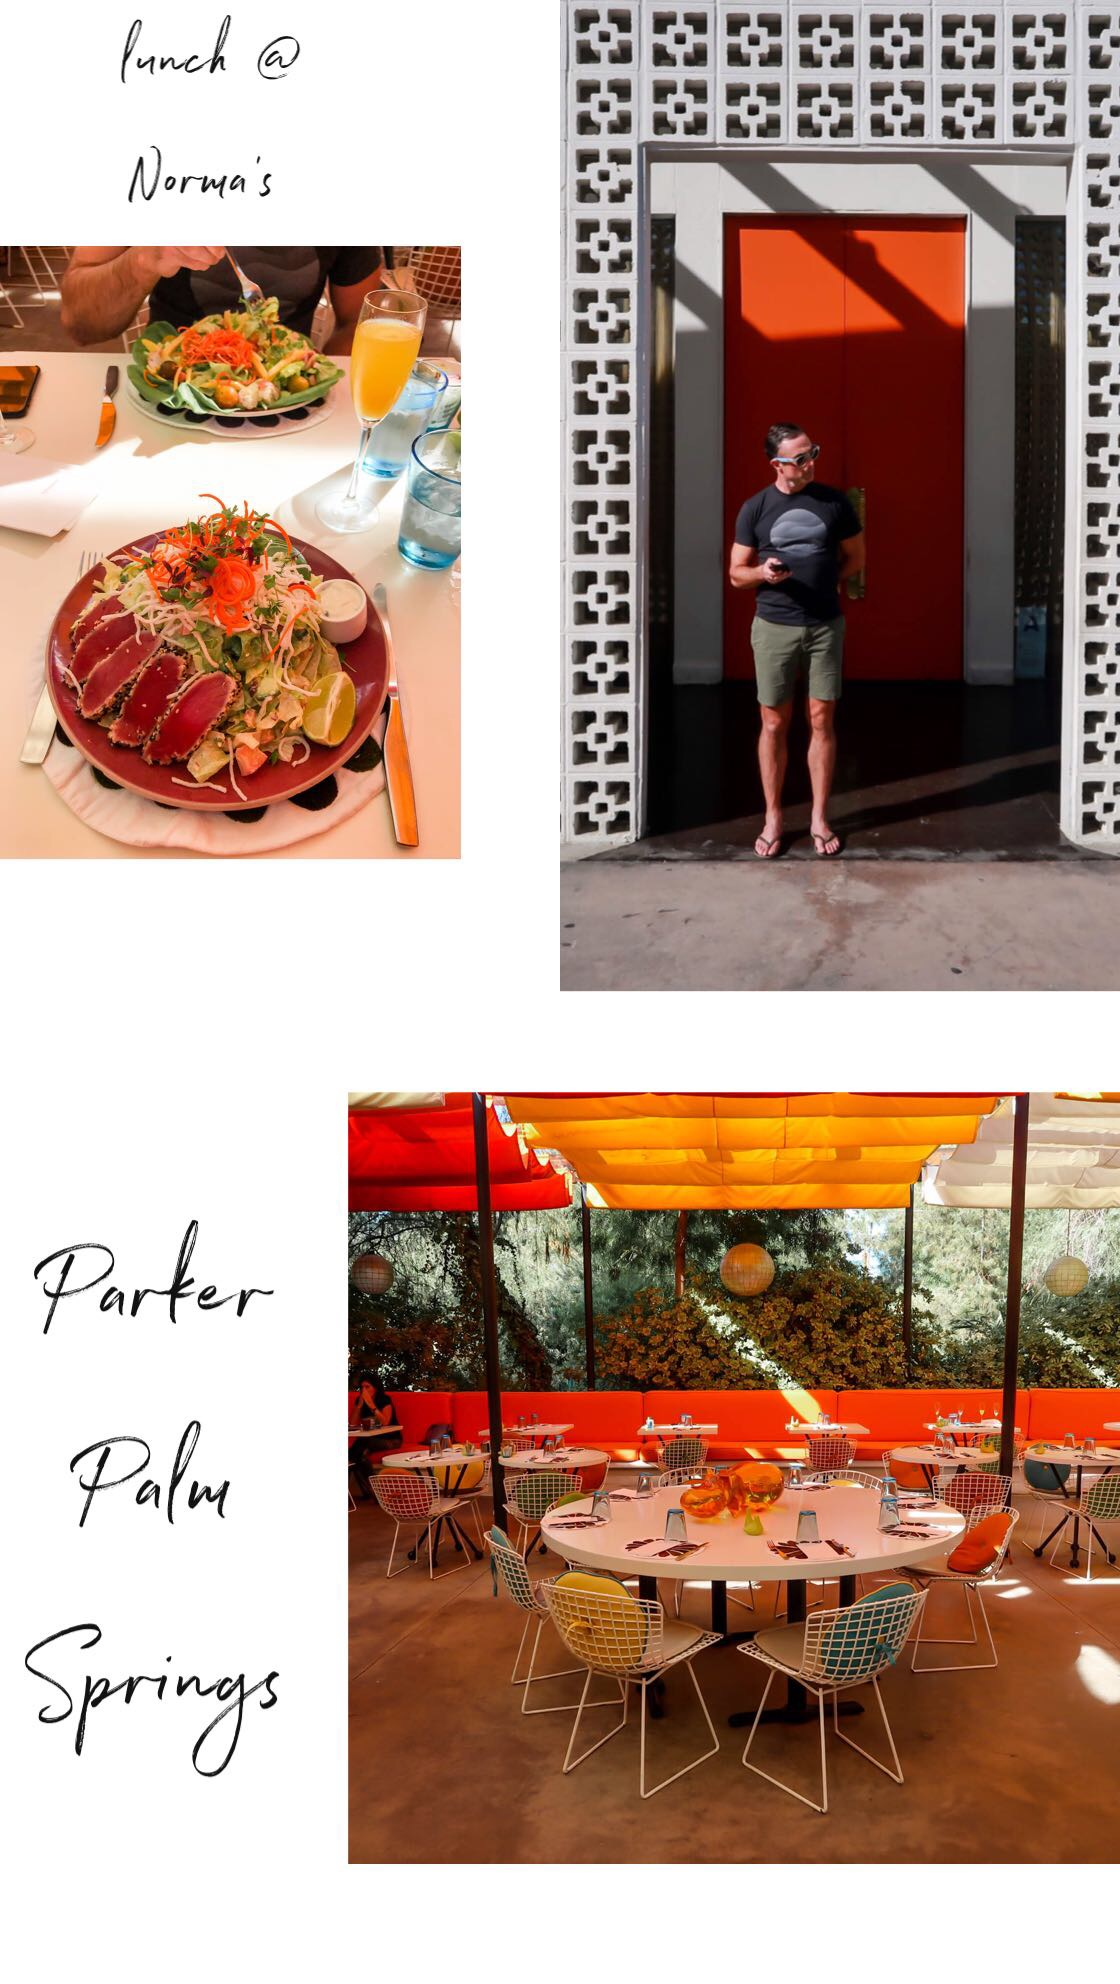 Parker Palm Springs - Norma's - Lauren Schwaiger Travel Blog